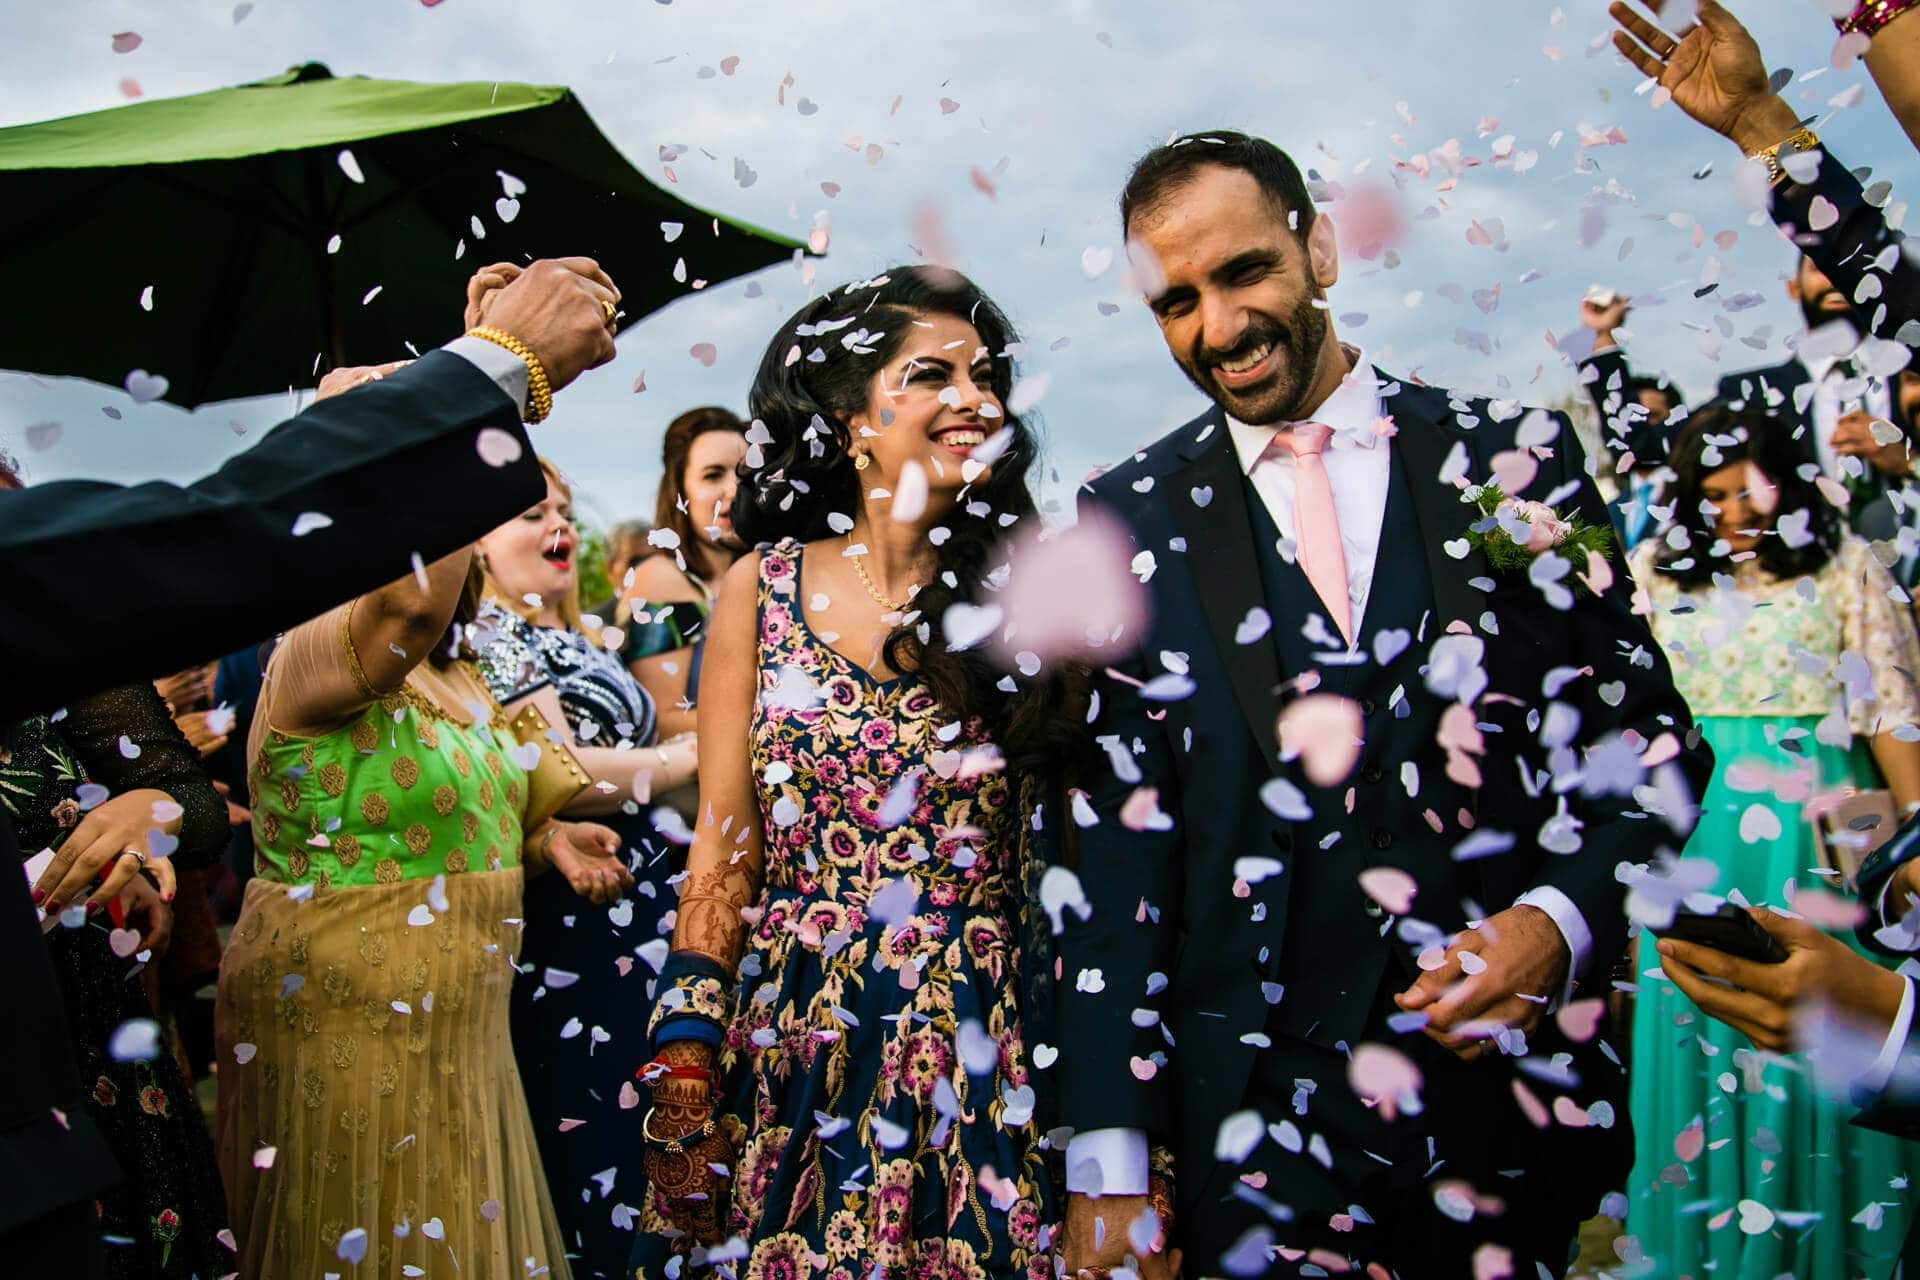 Confetti being thrown at the bride and groom